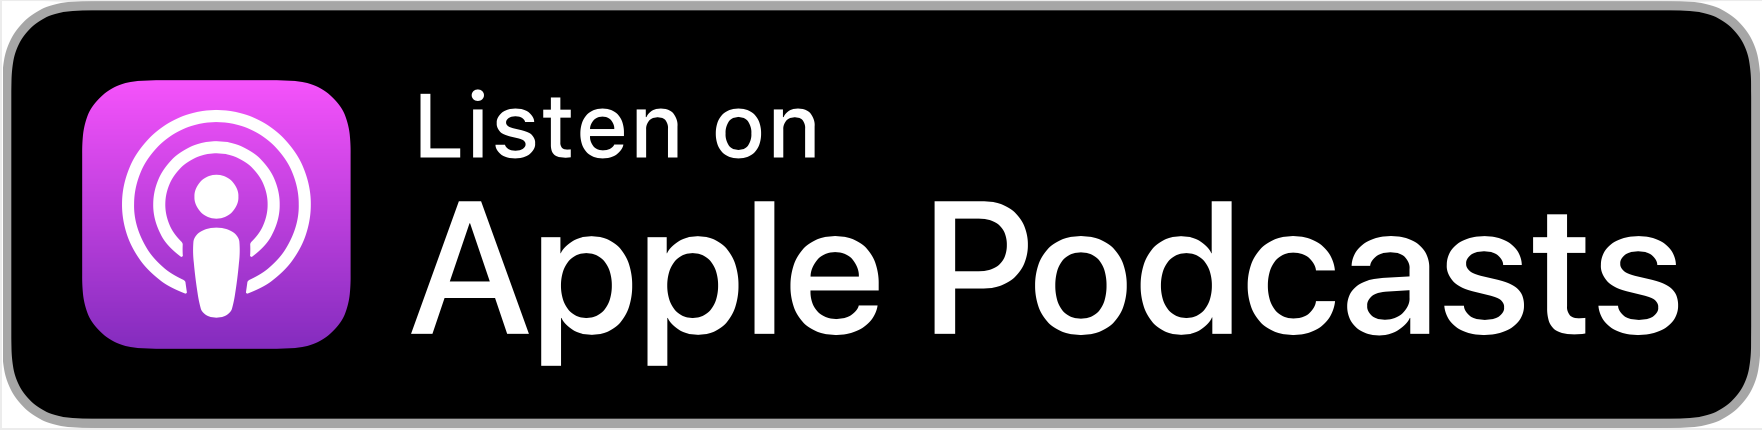 applepodcastslogo